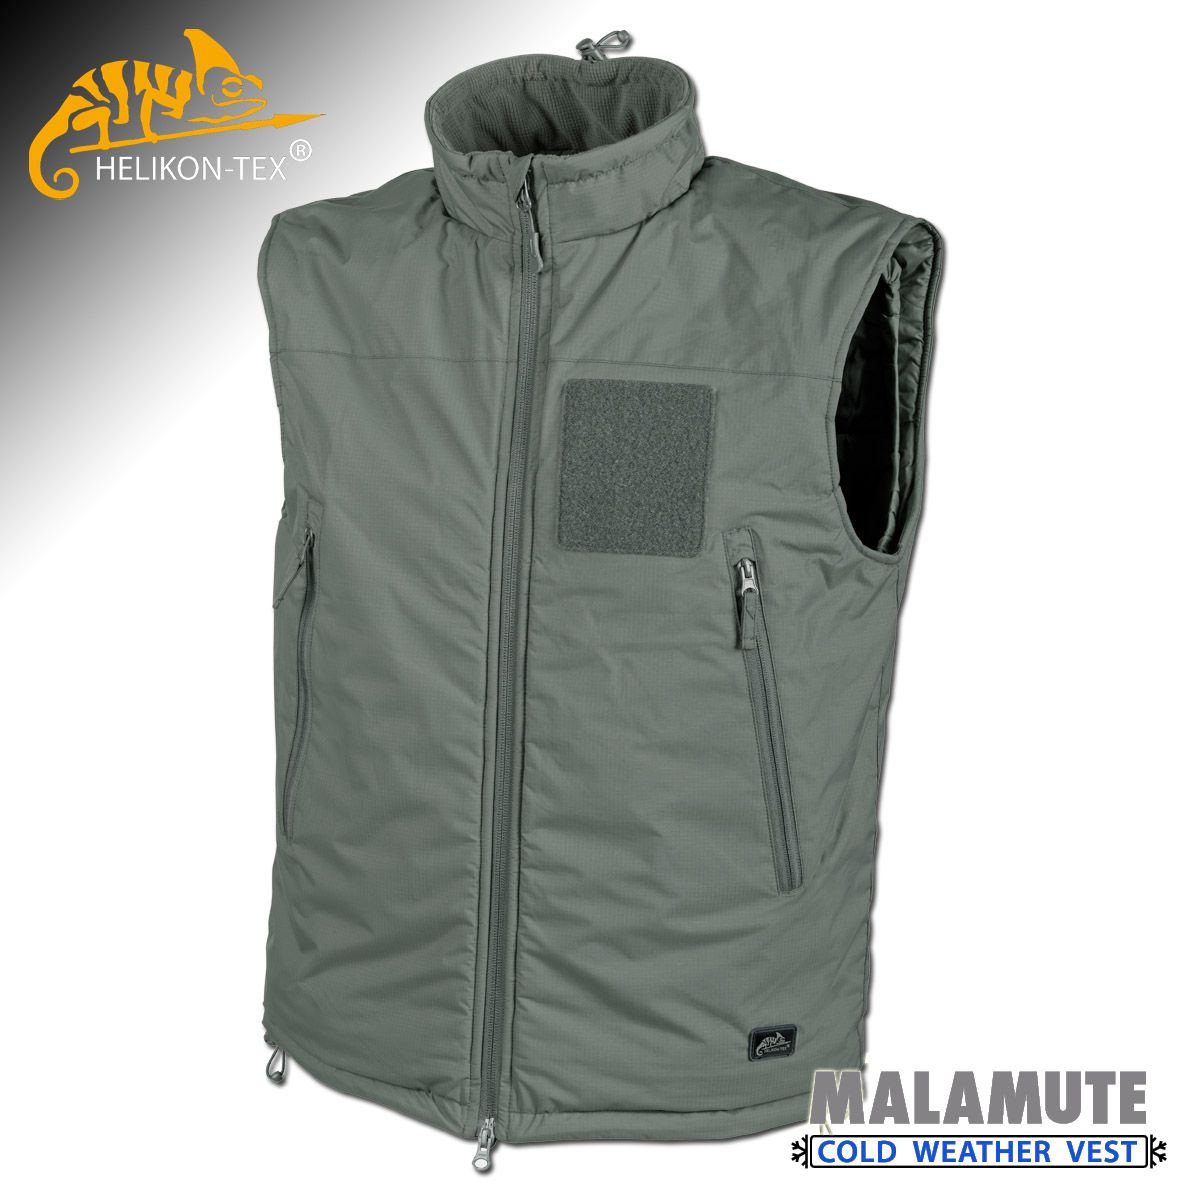 Green Vest Malamute Tex Is Colour At Helikon Now Available In Alpha wEqXnCp